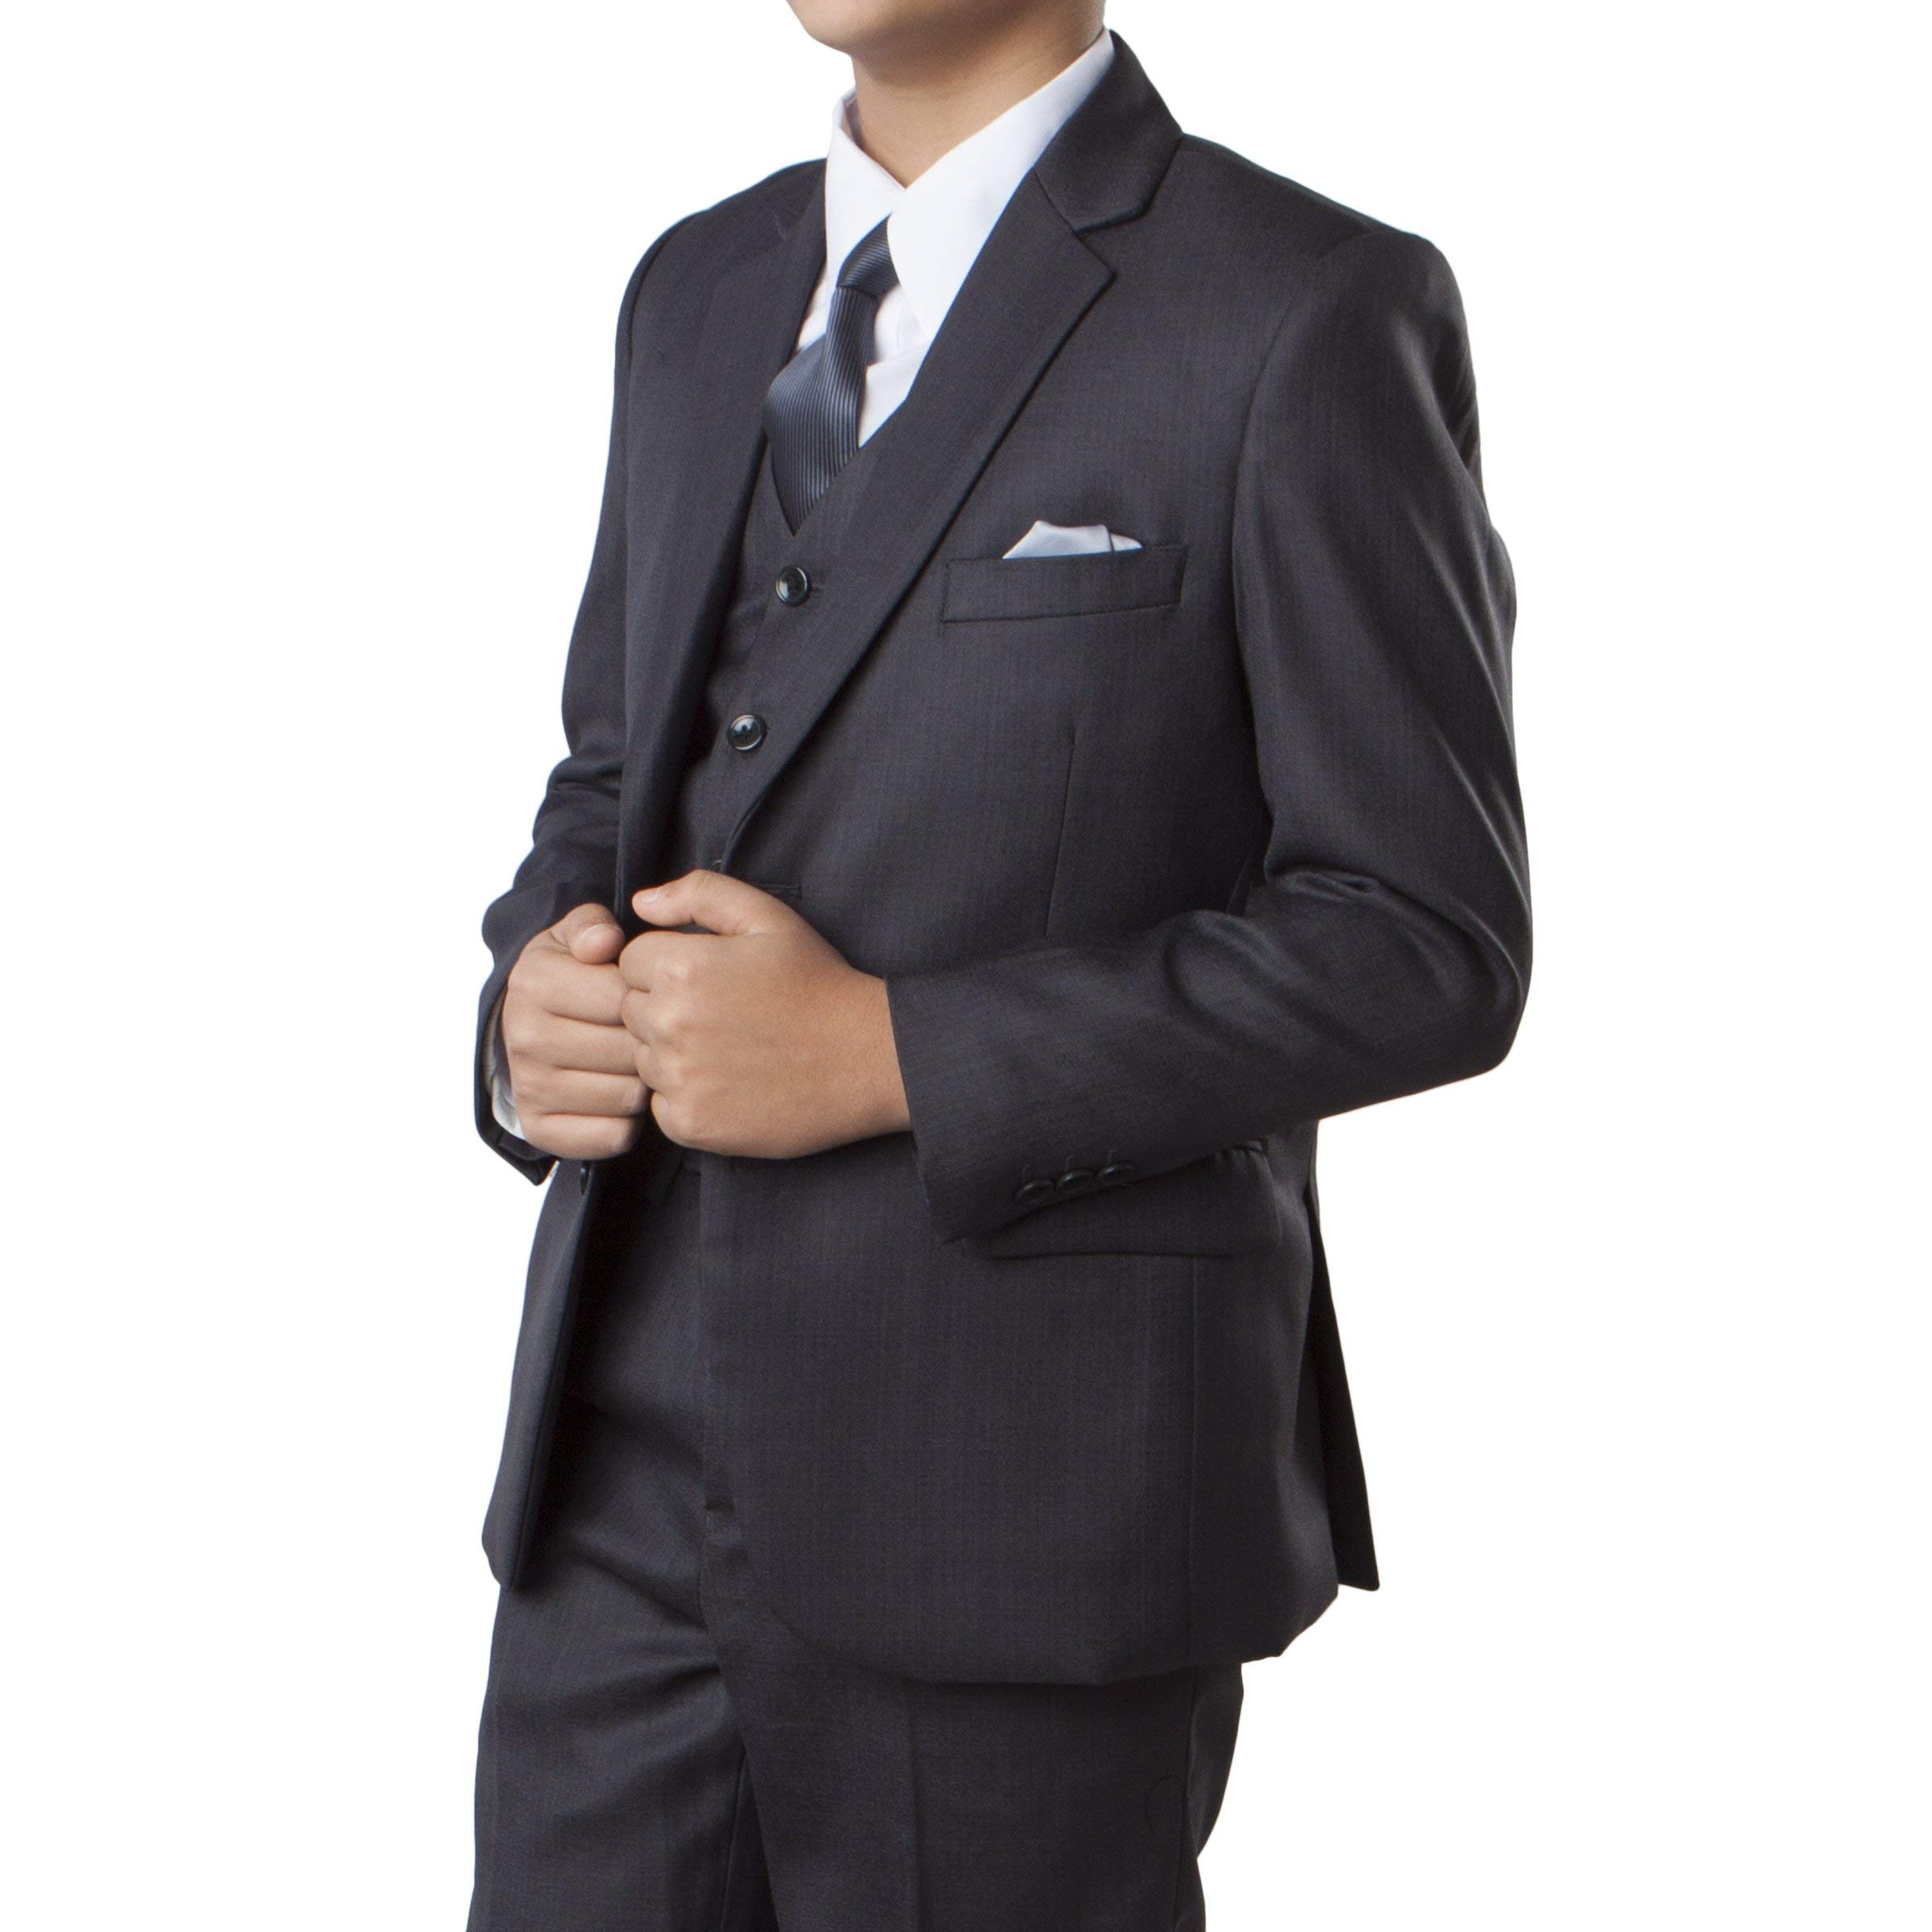 TAZIO Boys 3 Piece Solid Suit Set With Matching Shirt & Tie (12,Grey)